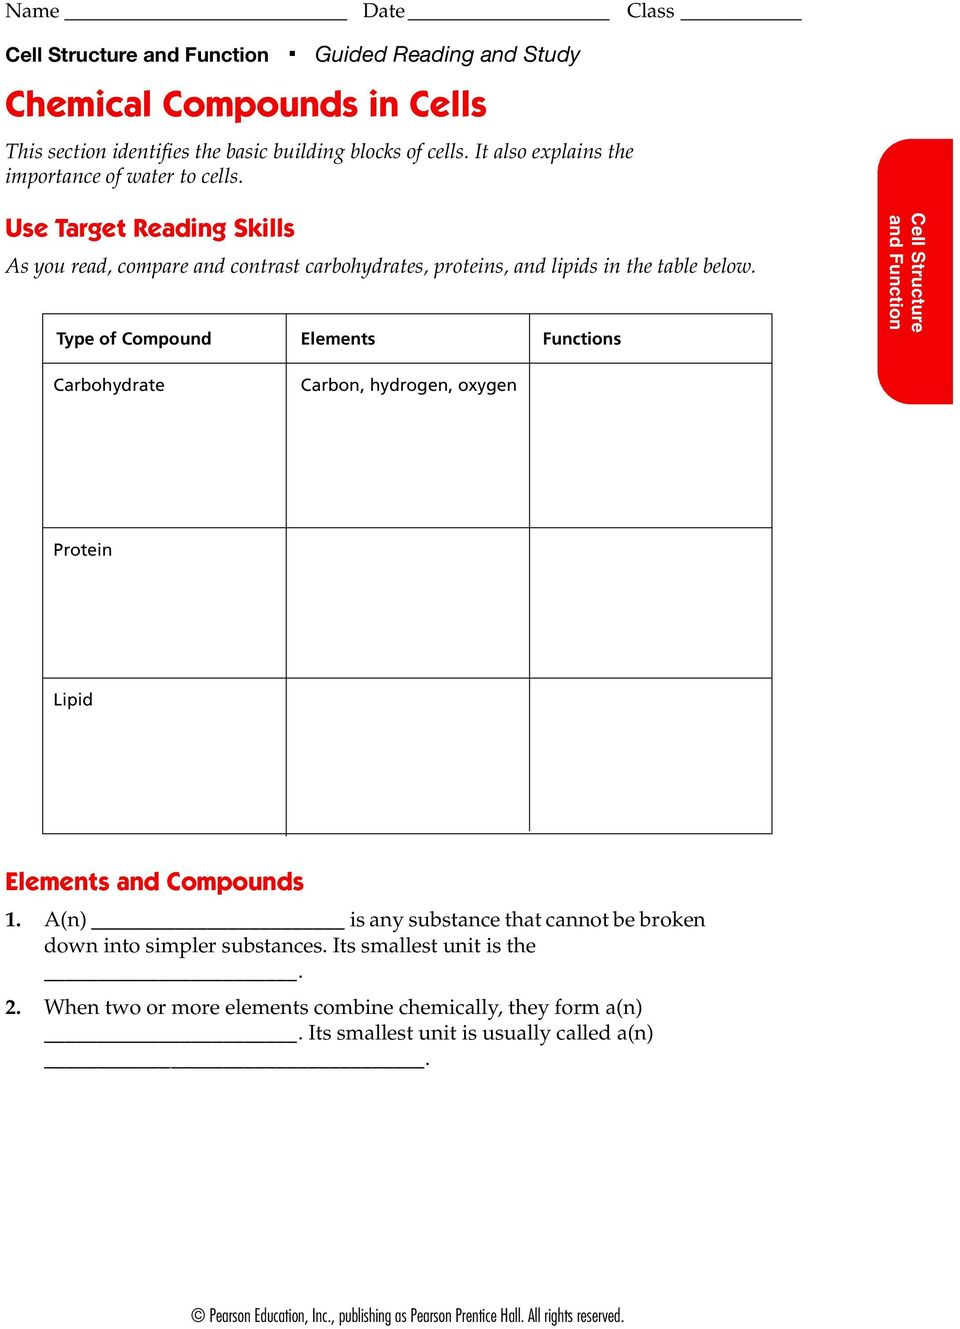 Use Target Reading Skills As you read, compare and contrast carbohydrates, proteins, and lipids in the table below.